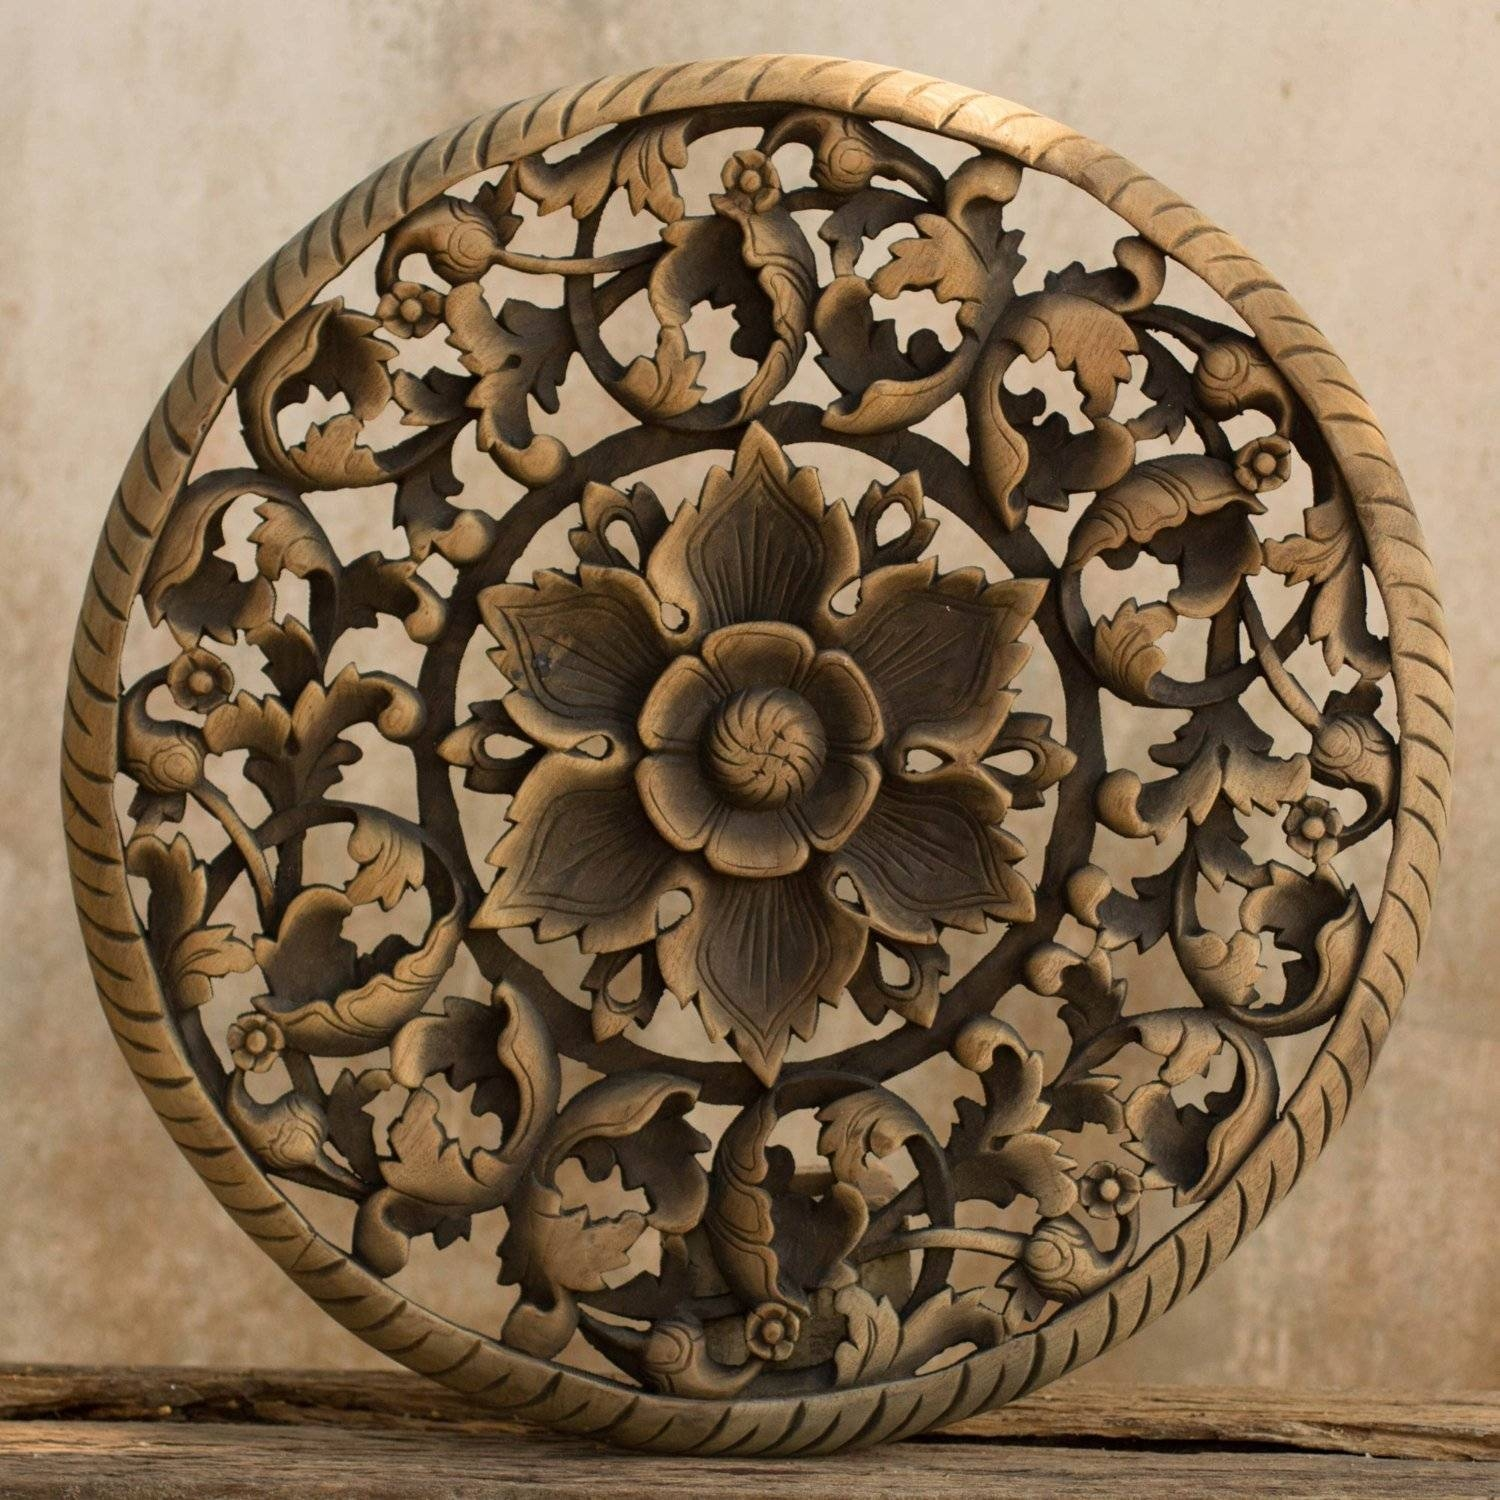 Tree Dimensional Floral Wooden Wall Hanging – Siam Sawadee With Regard To Most Recently Released Asian Wall Art Panels (View 5 of 20)